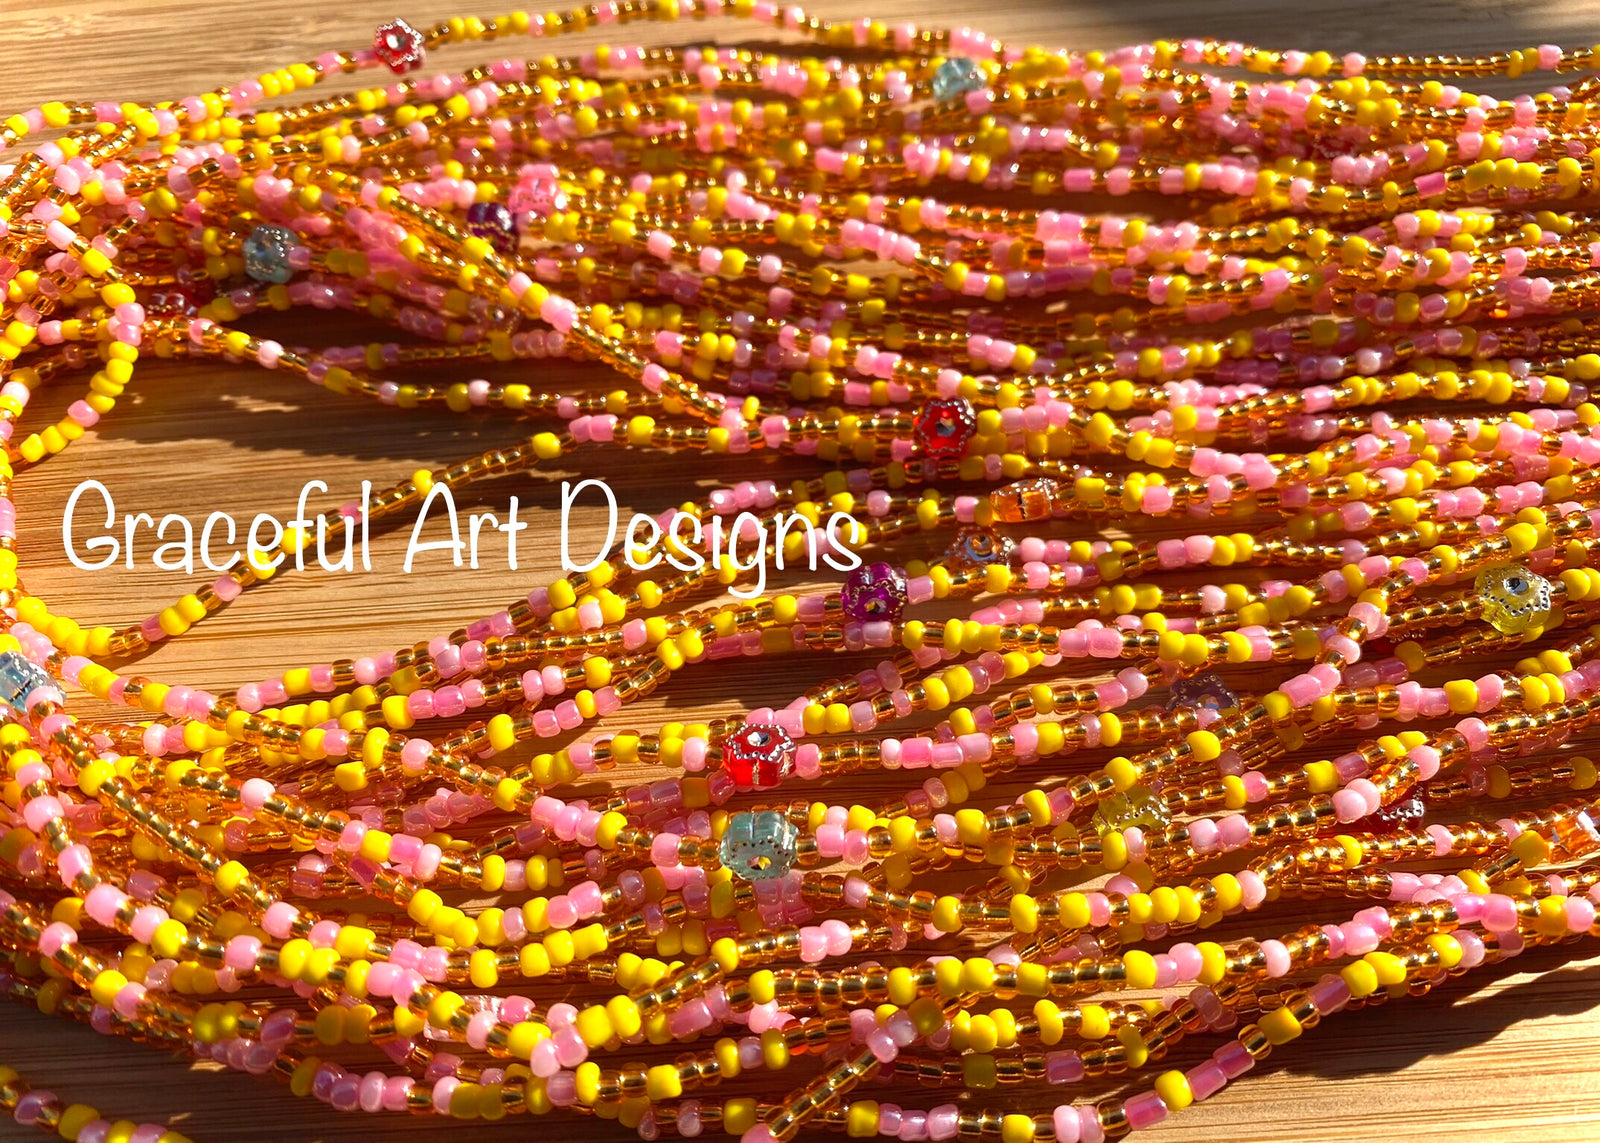 Handmade Waist Beads Tie on Traditional African Waist Beads Great for enhancing the waist or hips. Glow in the Dark Waist Beads Adore